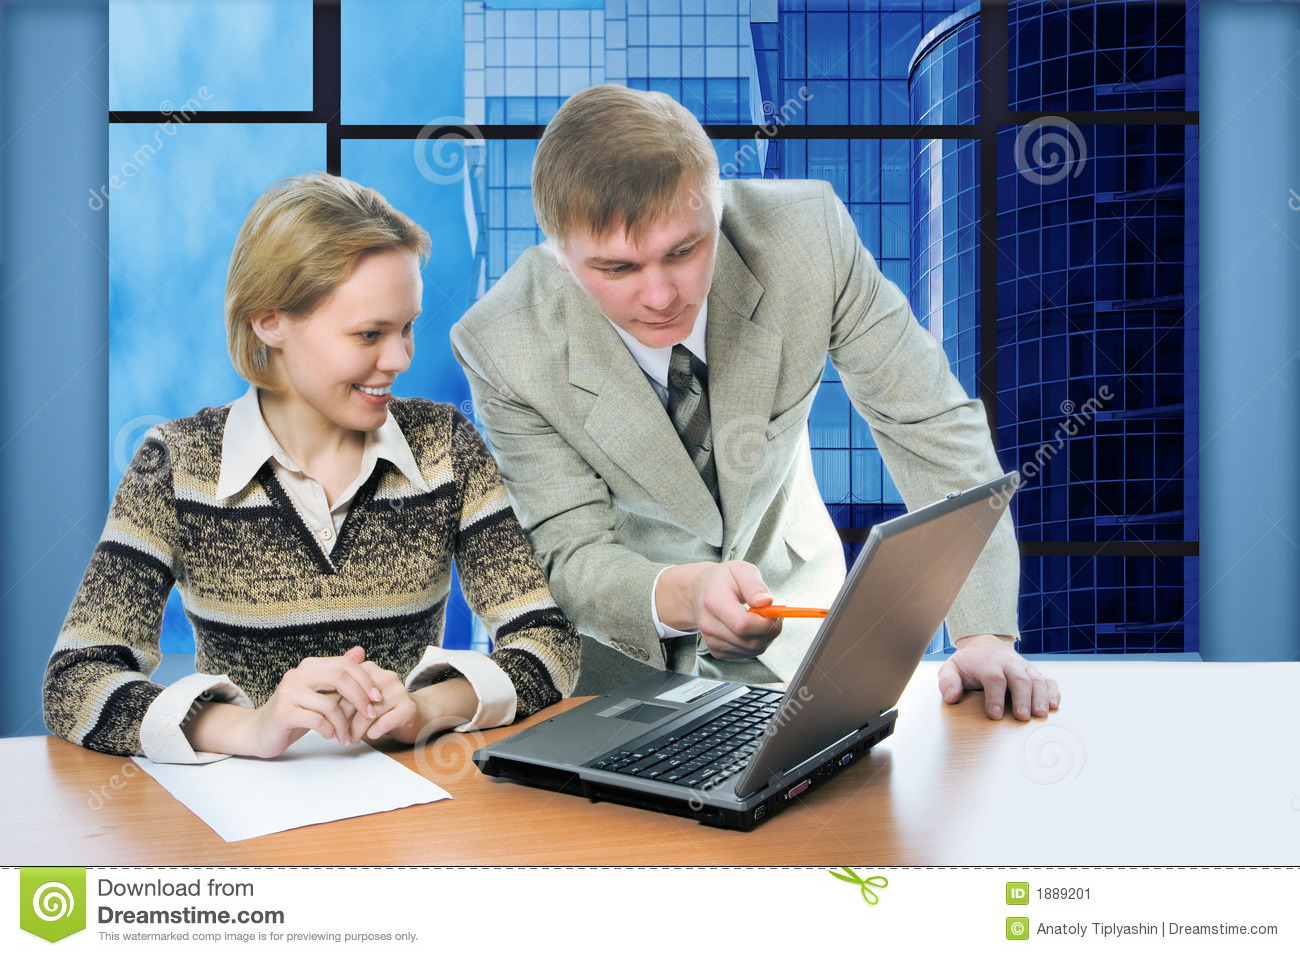 Business team man and woman work in office on laptop with view business buildings